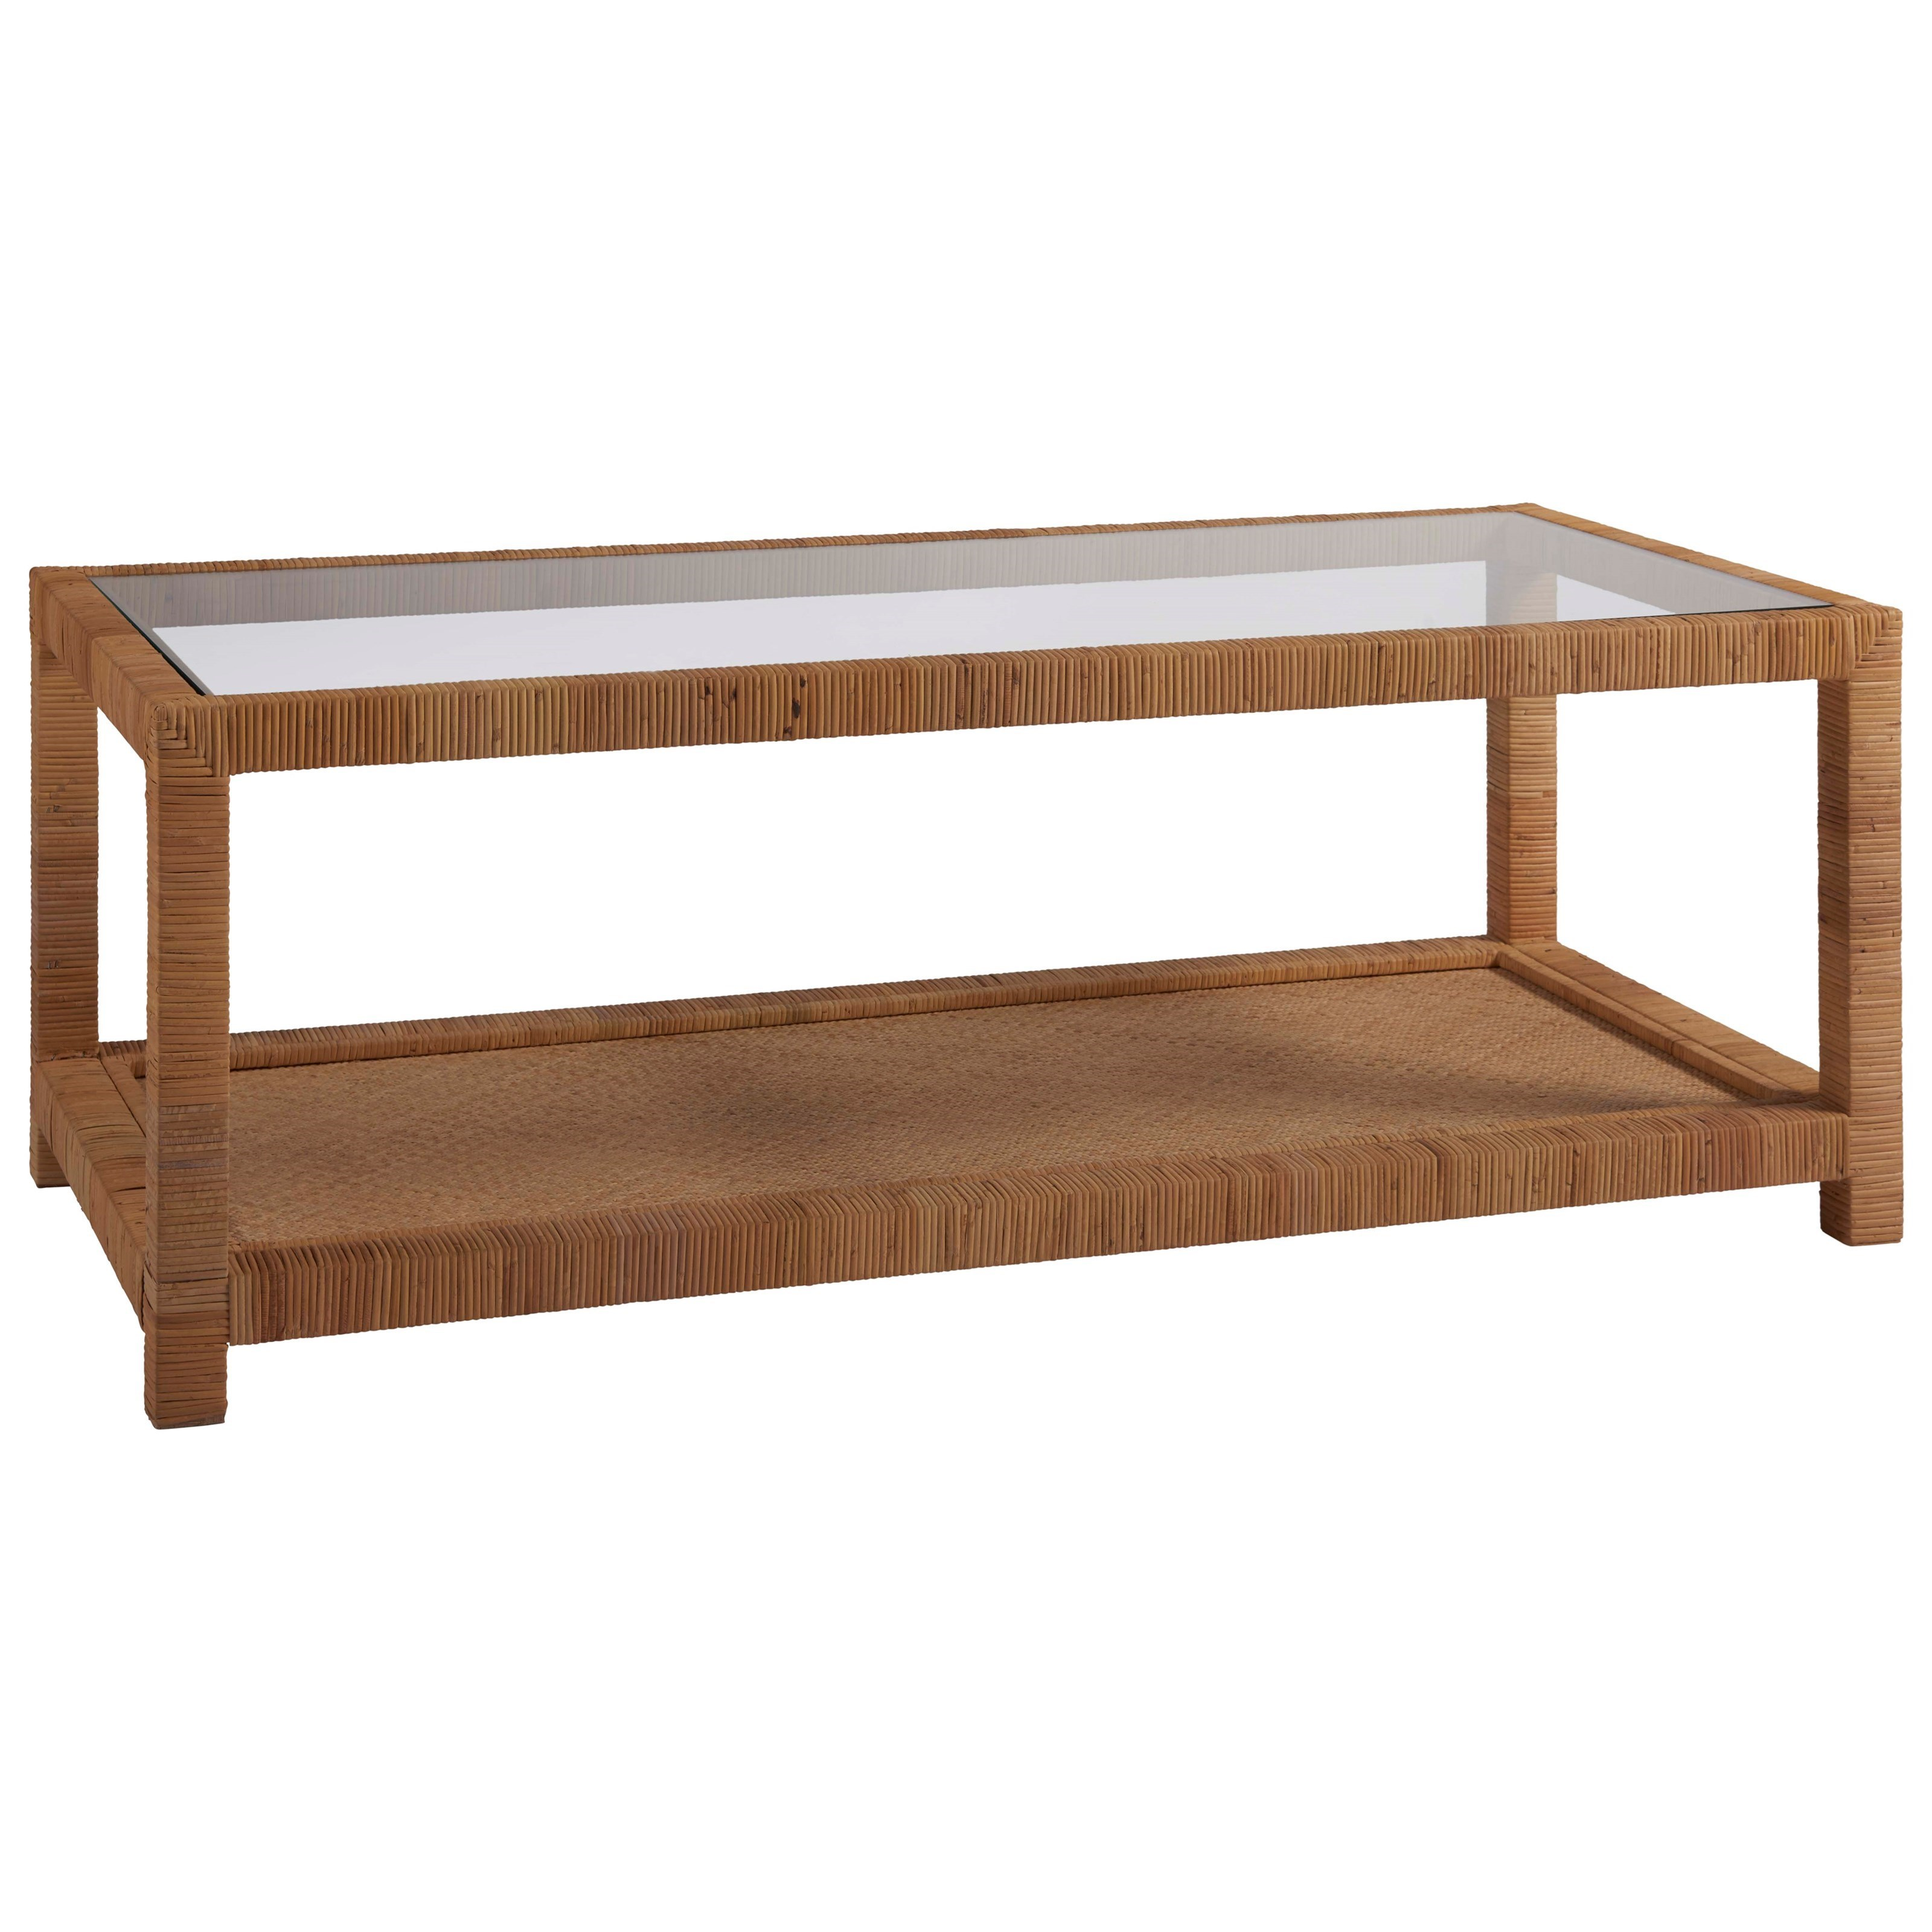 Coastal Living Home - Escape Long Key Cocktail Table by Universal at Baer's Furniture